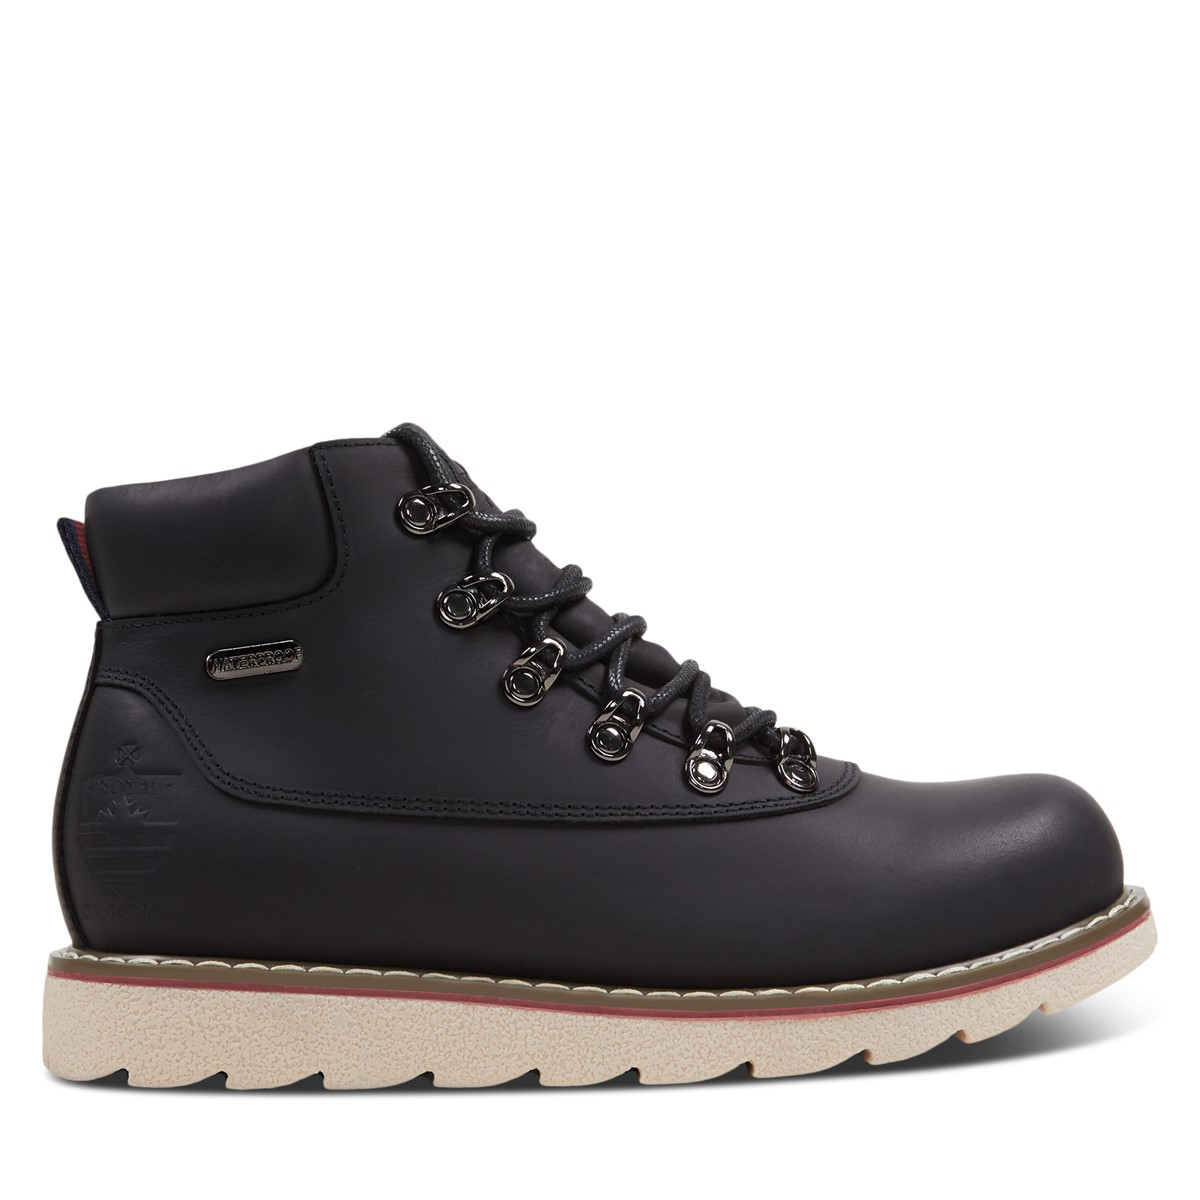 Women's Dorval Boots in Black